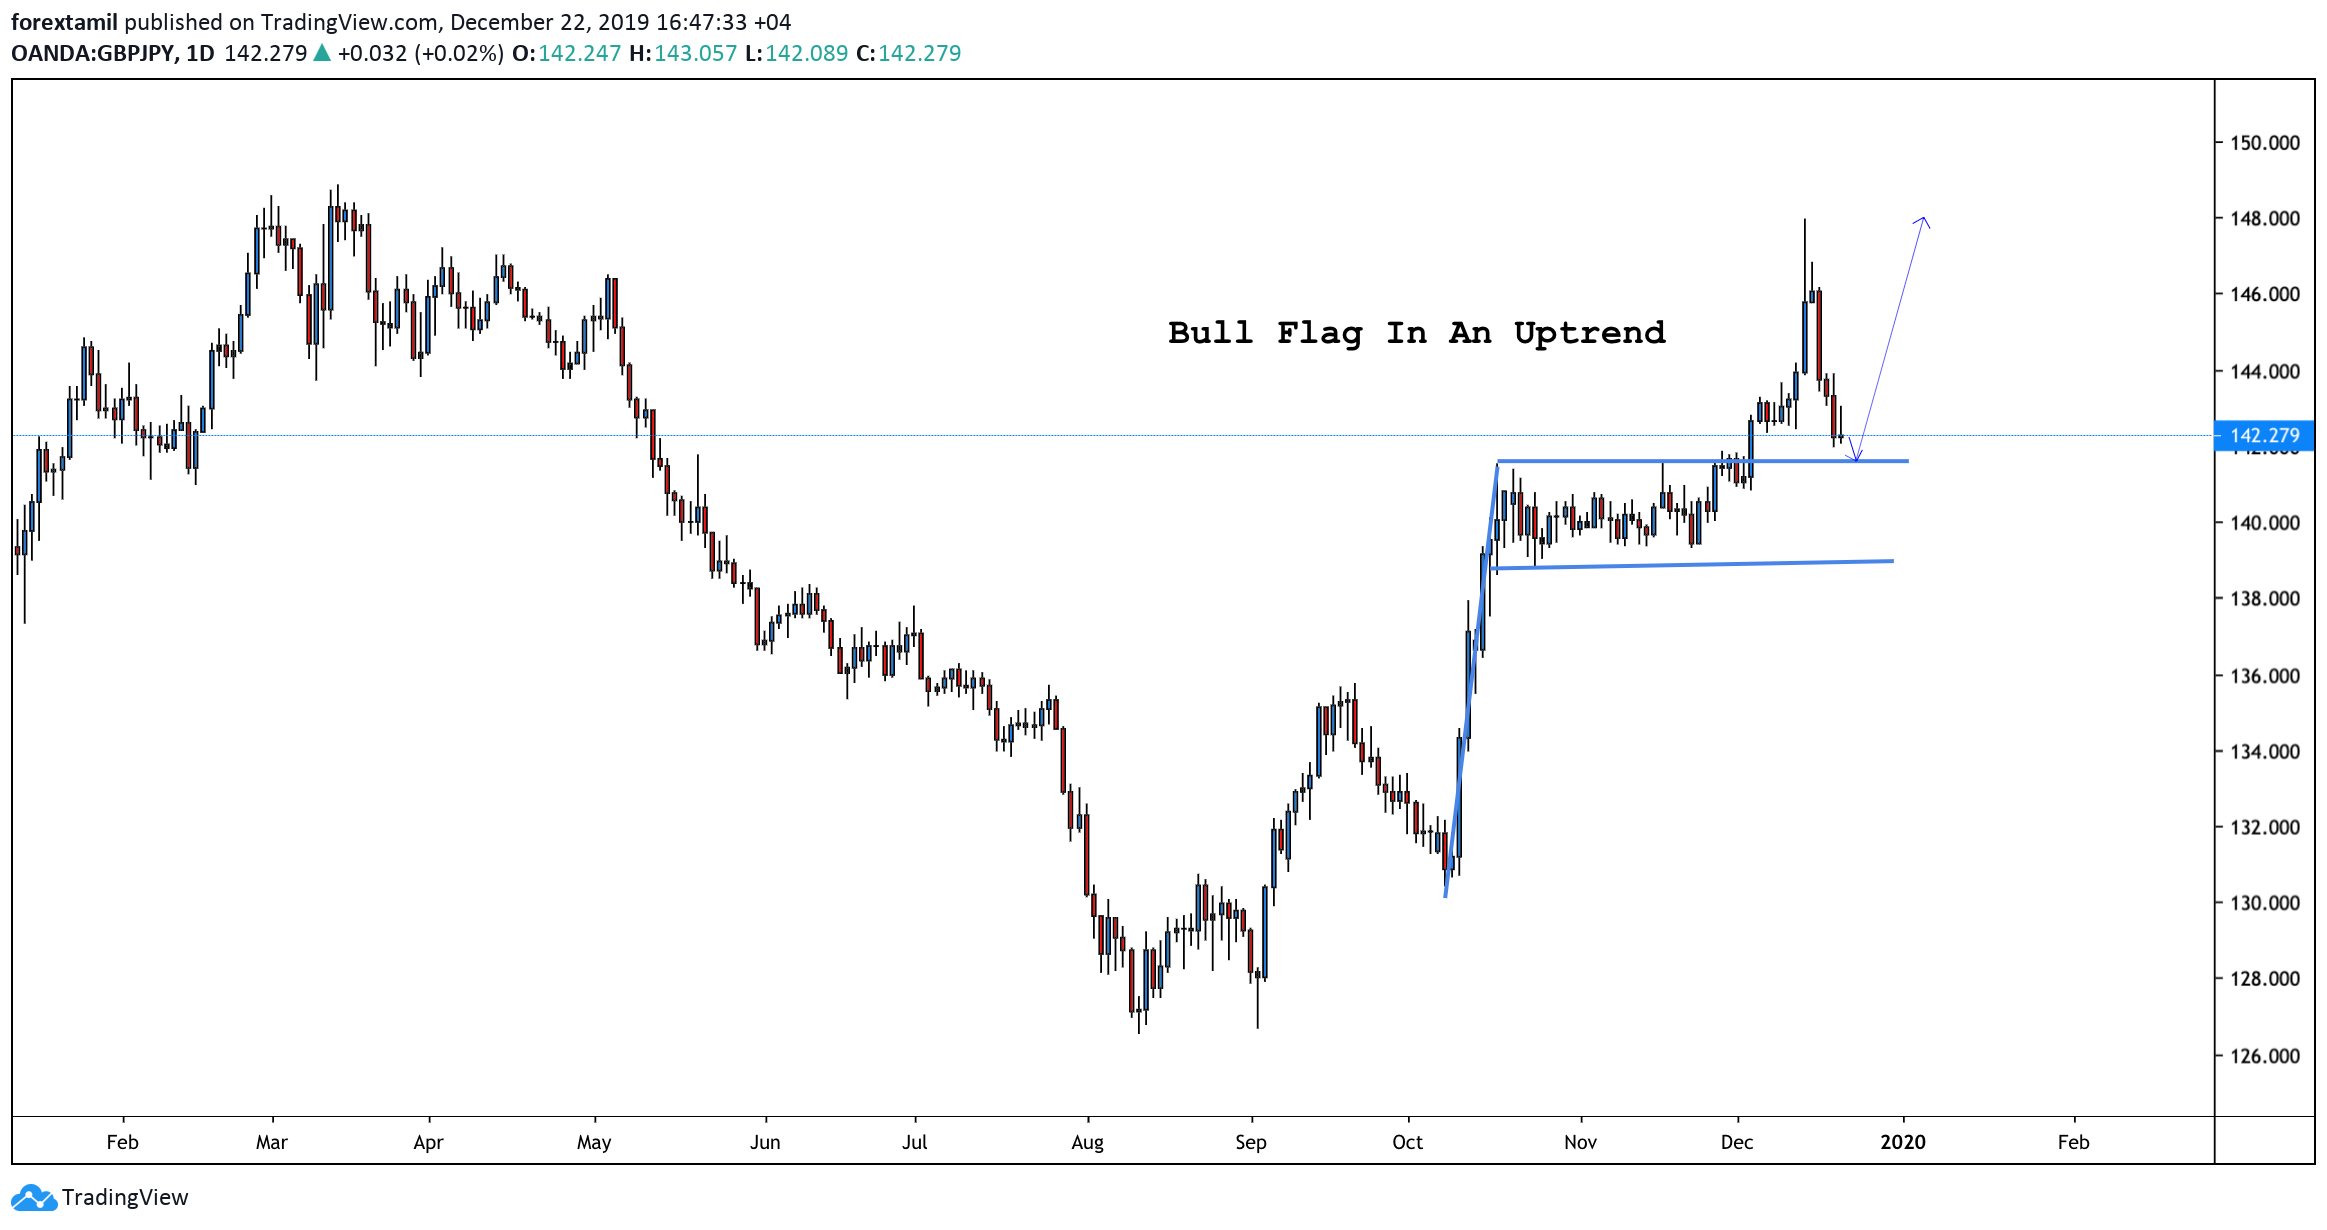 GBP/USD Forecast: Hard-Brexit fears to keep pound pressured